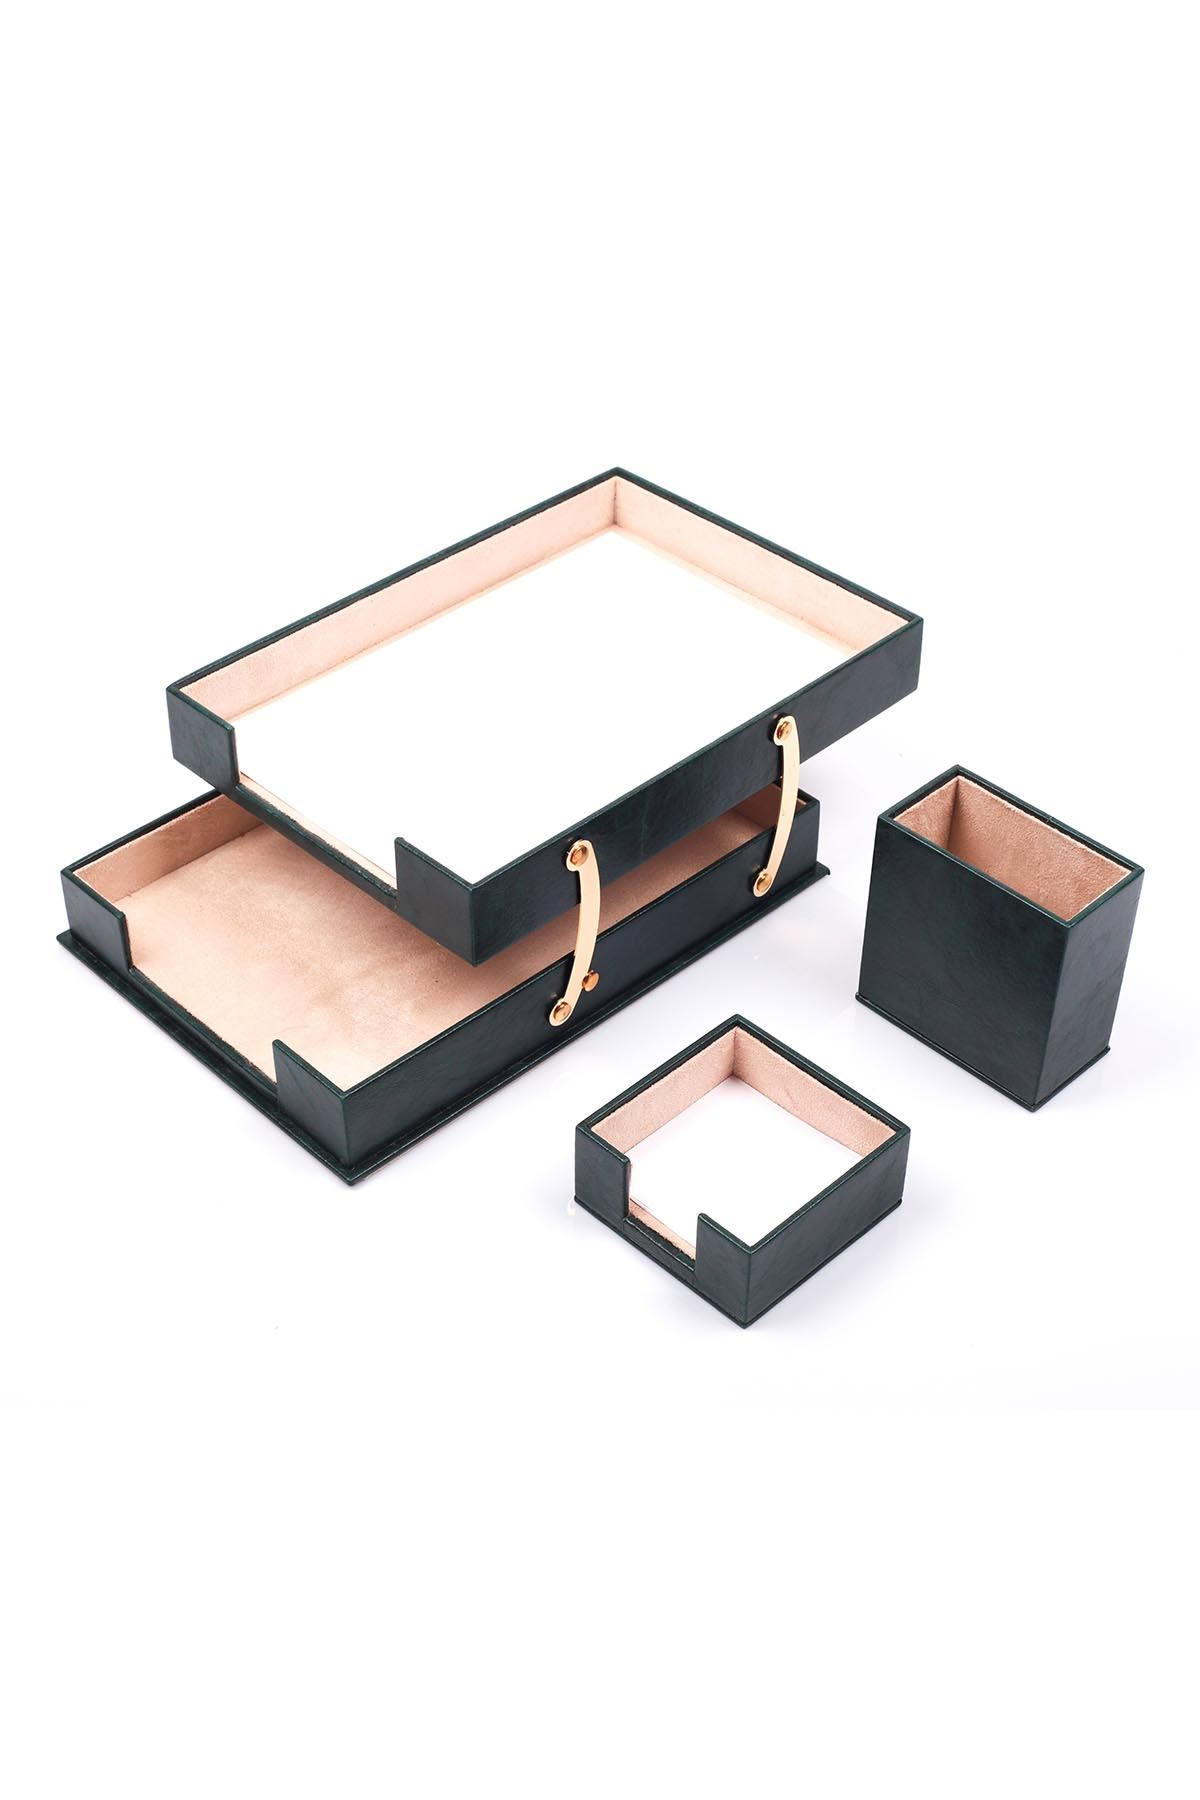 Double Document Tray With 2 Accessories Green| Desk Set Accessories | Desktop Accessories | Desk Accessories | Desk Organizers